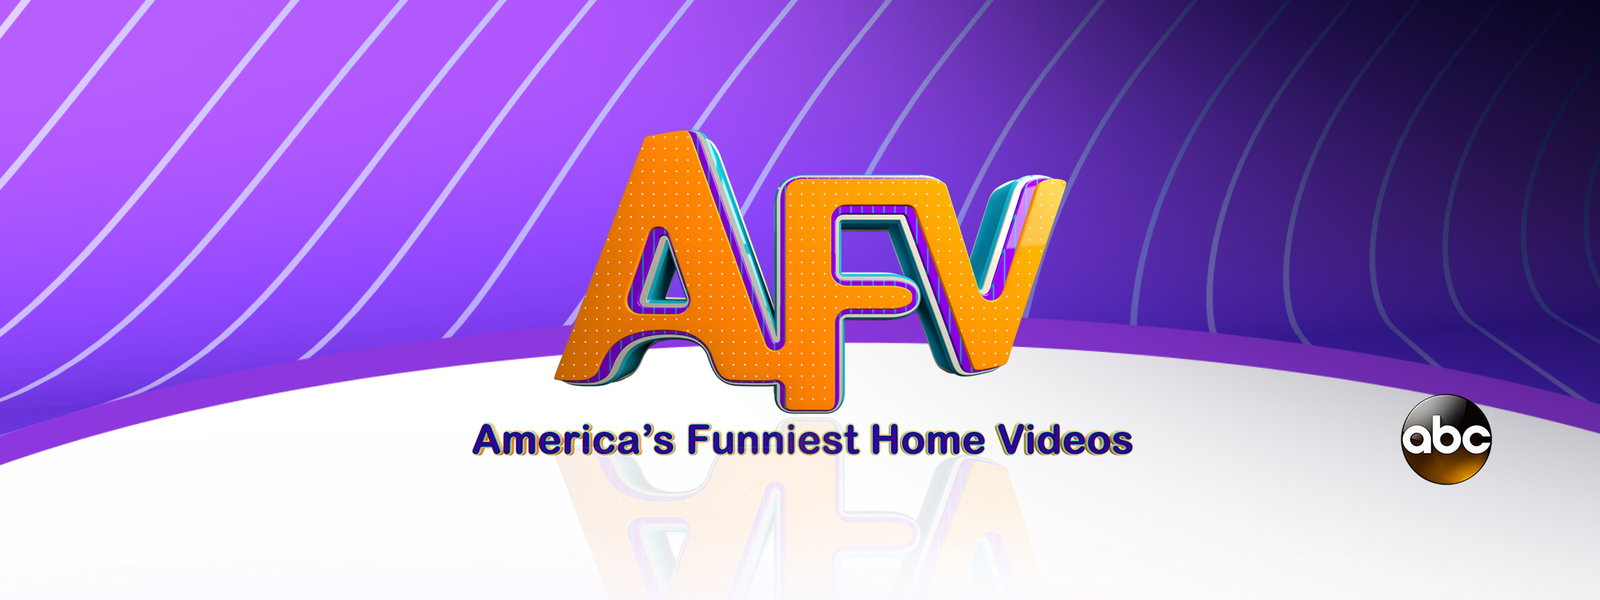 When Does America's Funniest Home Videos Season 28 Start? Premiere Date